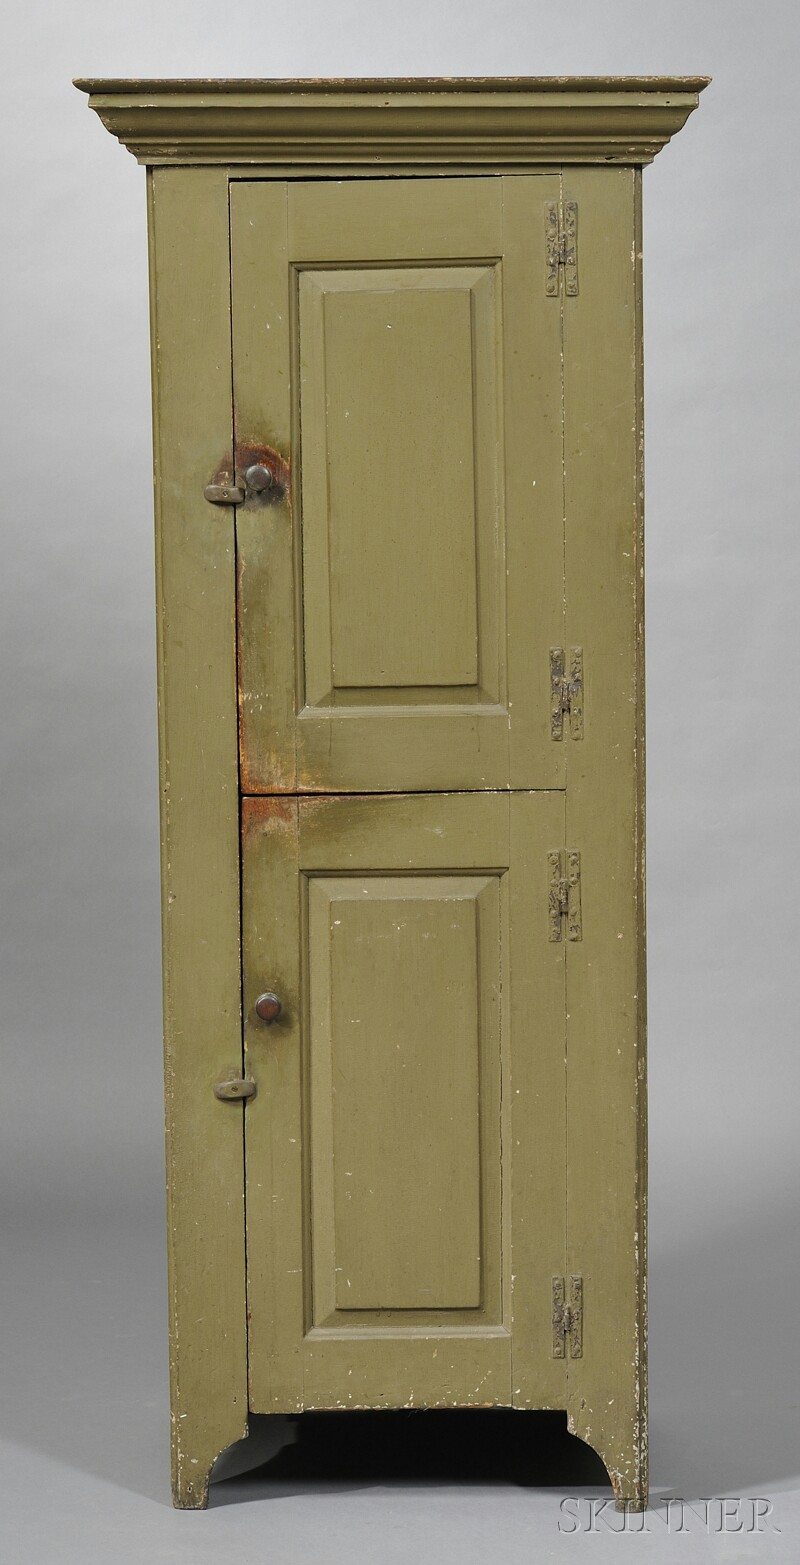 Diminutive Olive Green-painted Cupboard